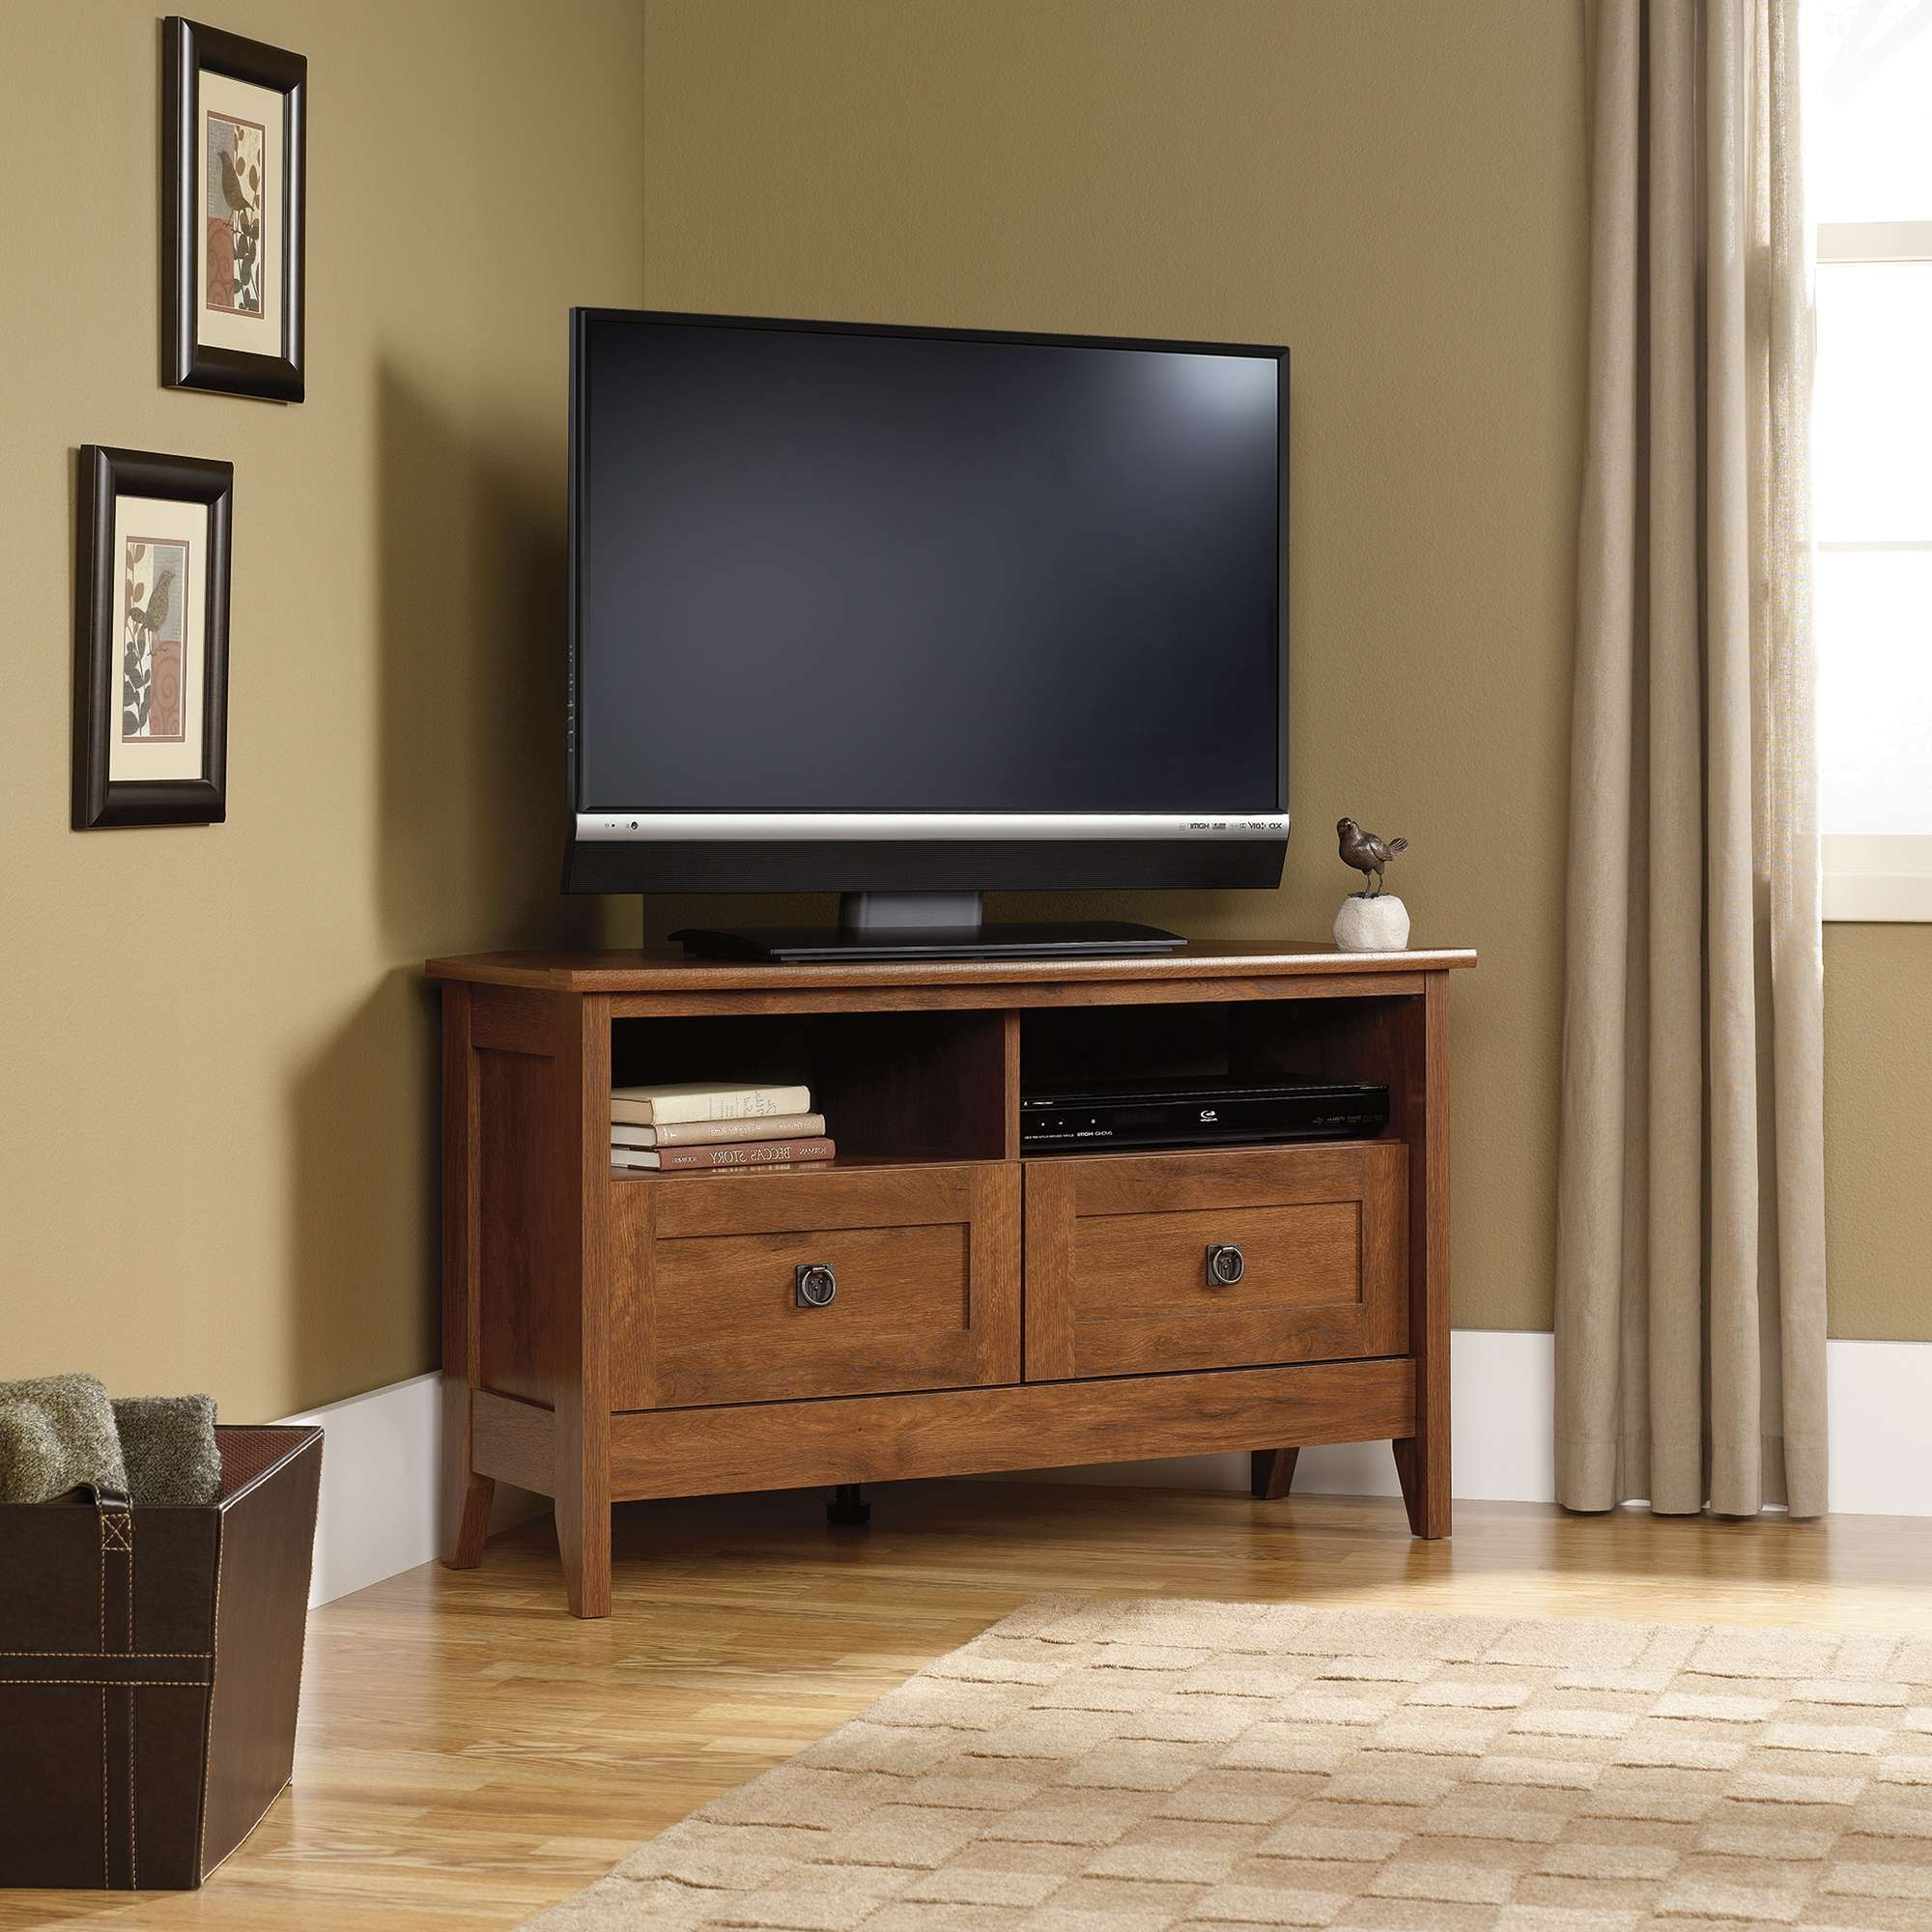 Corner Oak Tv Cabinets For Flat Screens With Doors • Corner Cabinets Within Oak Tv Cabinets For Flat Screens With Doors (View 11 of 20)